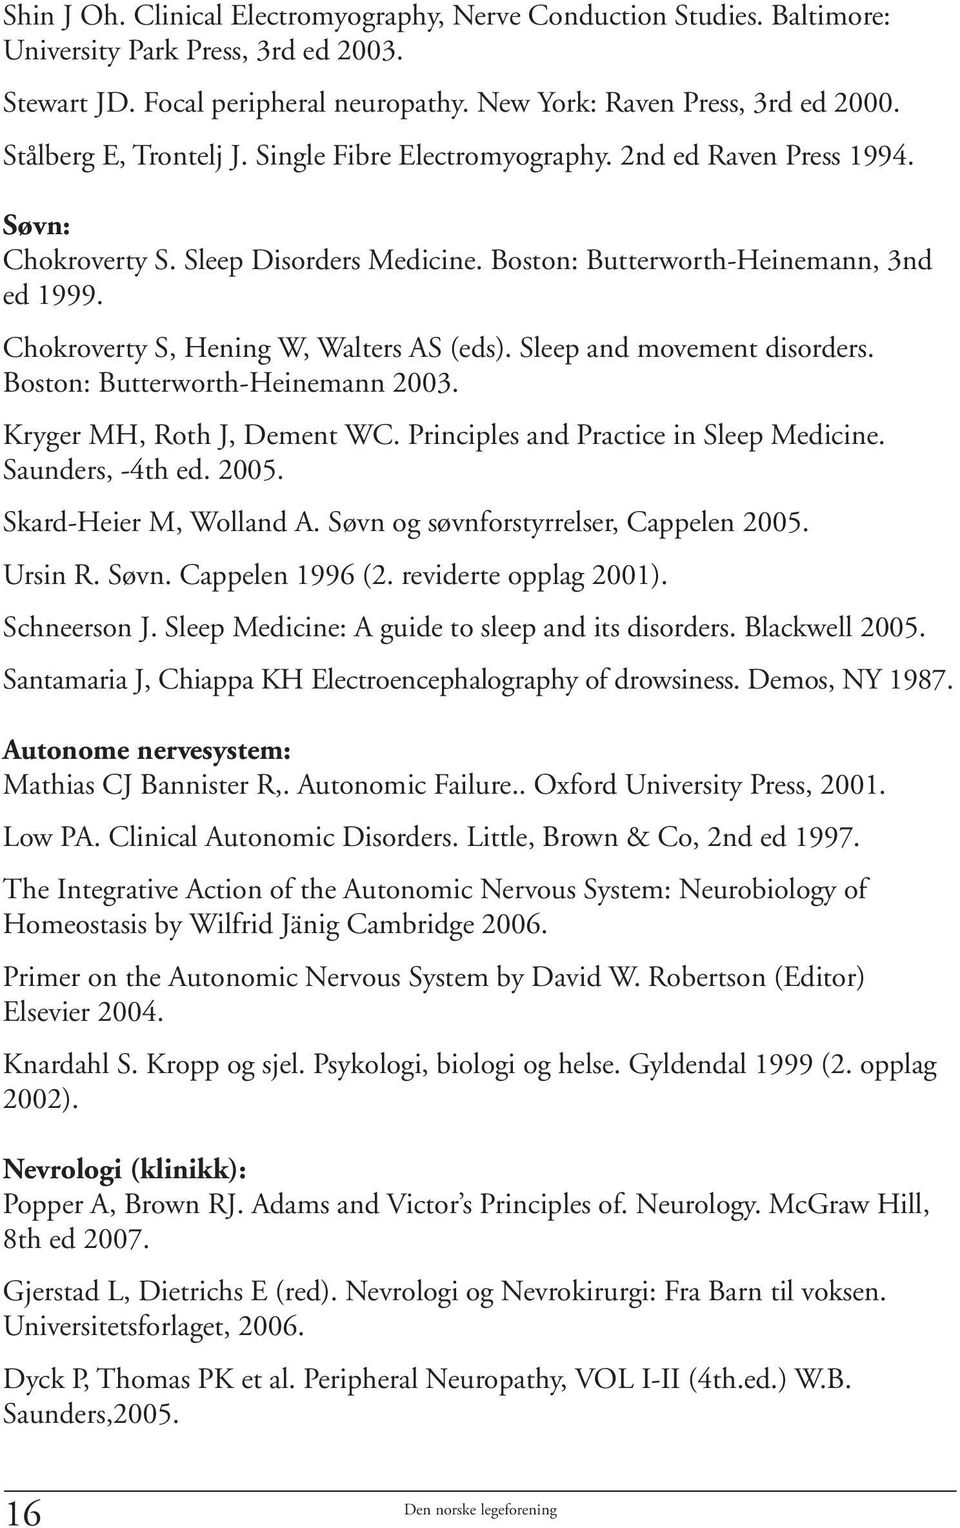 Chokroverty S, Hening W, Walters AS (eds). Sleep and movement disorders. Boston: Butterworth-Heinemann 2003. Kryger MH, Roth J, Dement WC. Principles and Practice in Sleep Medicine. Saunders, -4th ed.